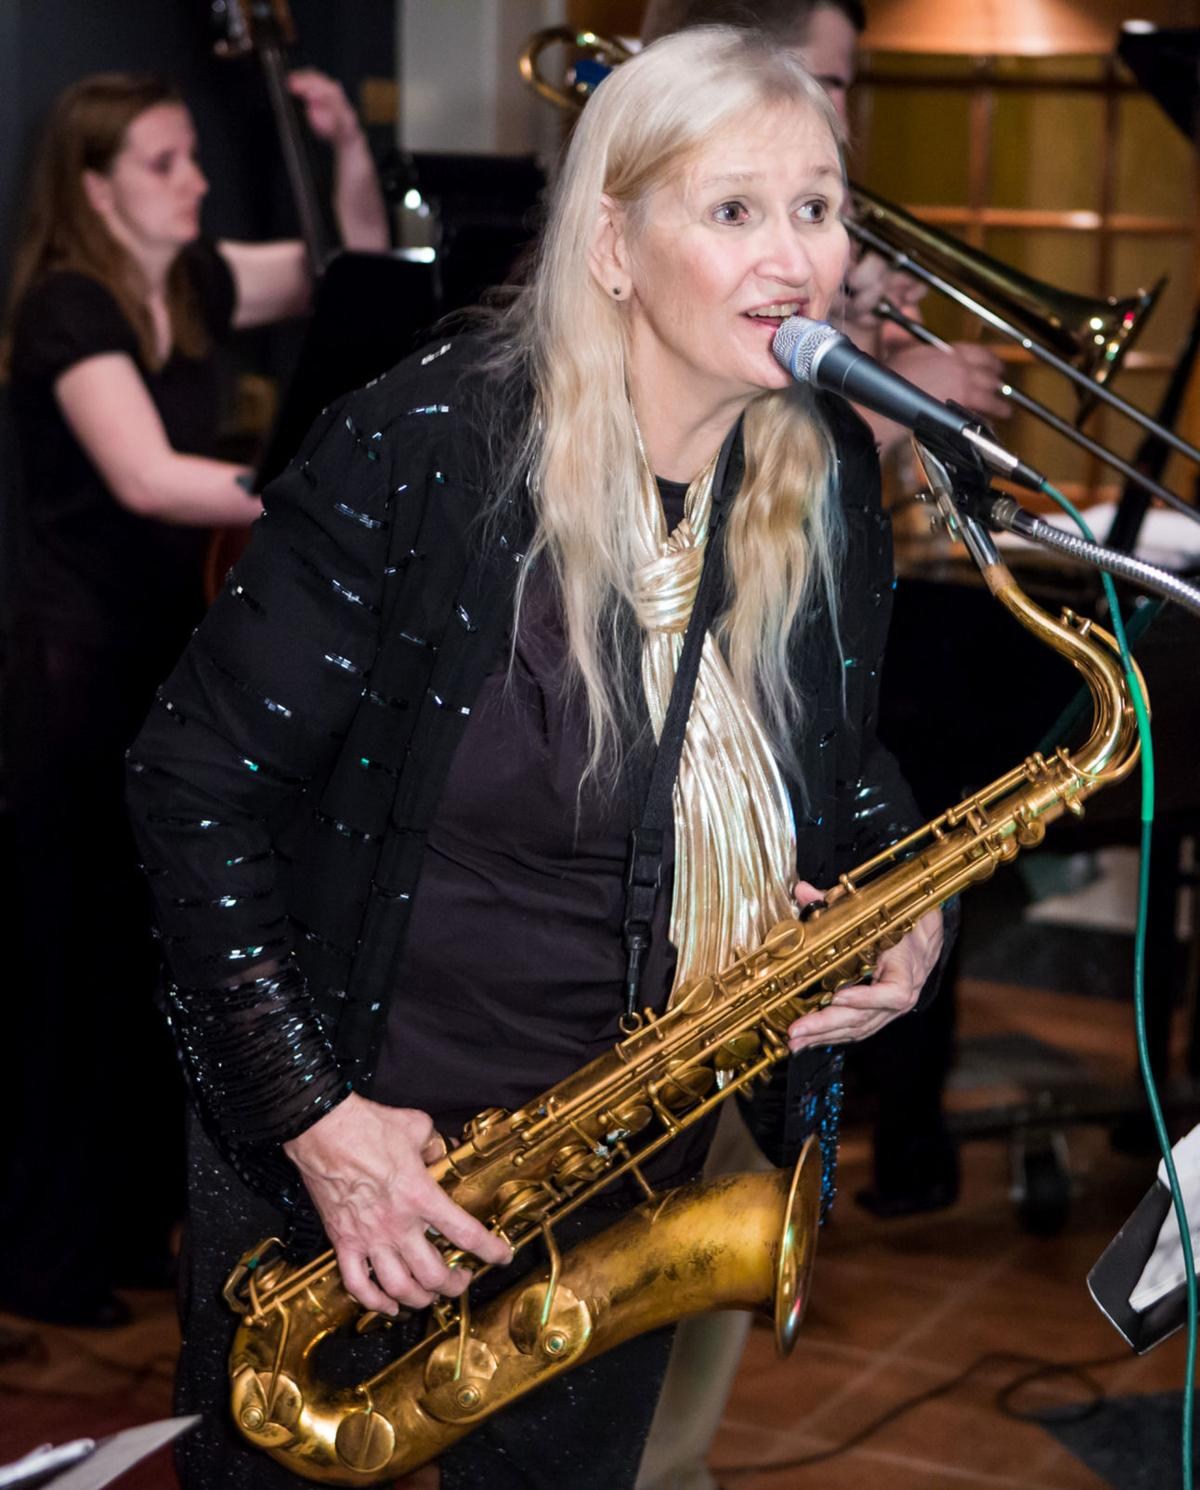 Carla Brownlee and her sax keep the blues goin